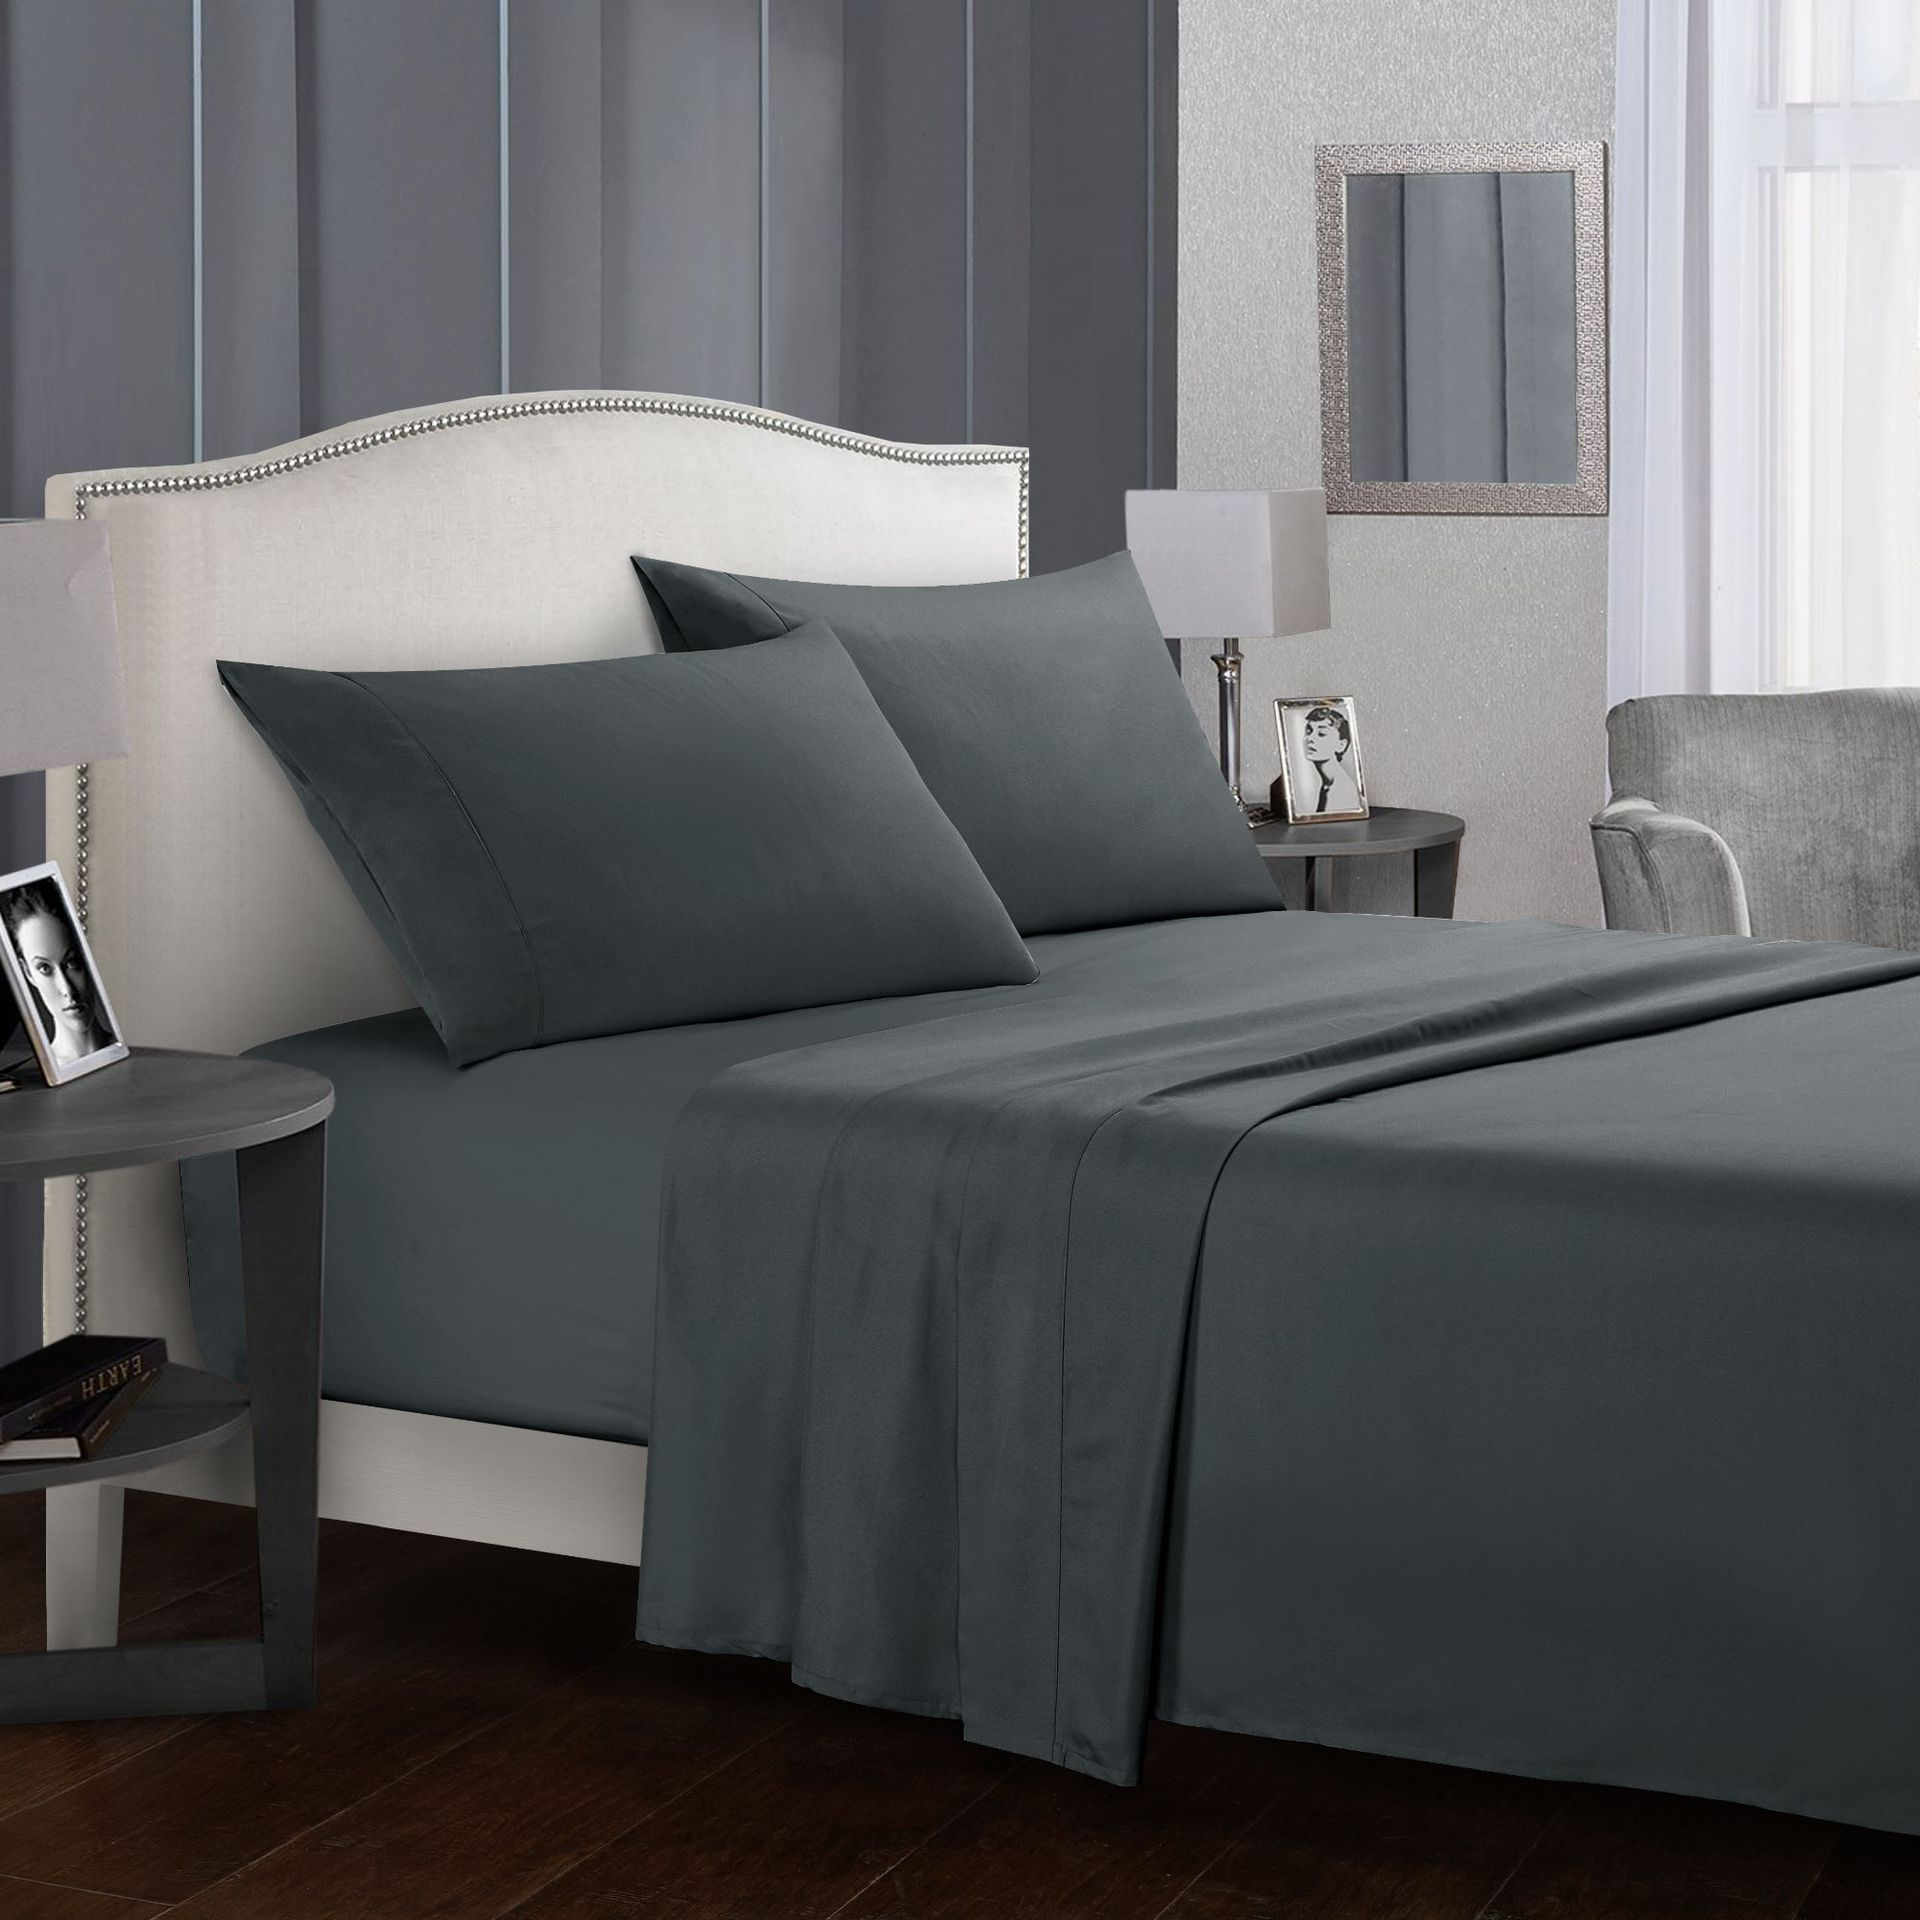 - Best Cotton Bed White Sheets Near Me And Get Free Shipping - L4c2870i8